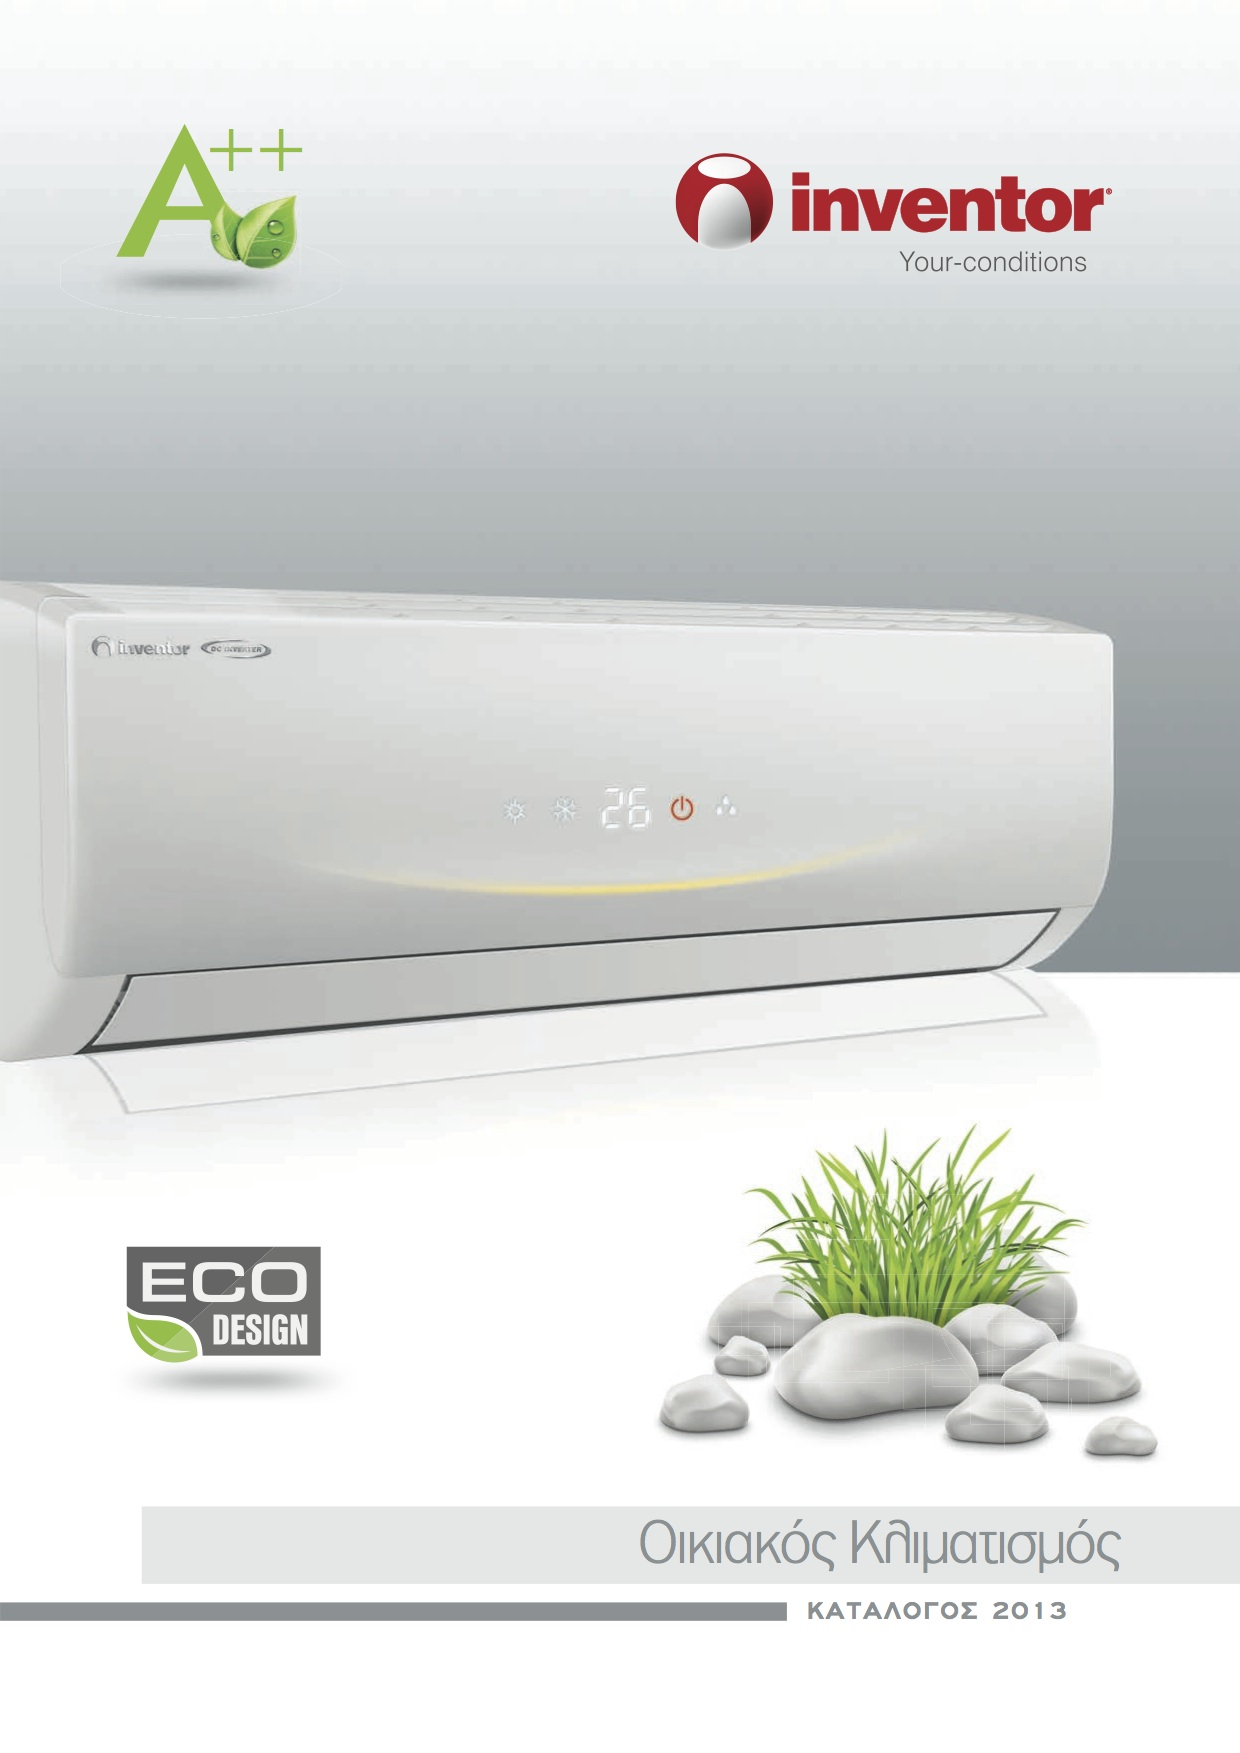 Inventor Wall Mounted Air Conditioner #9E1E24